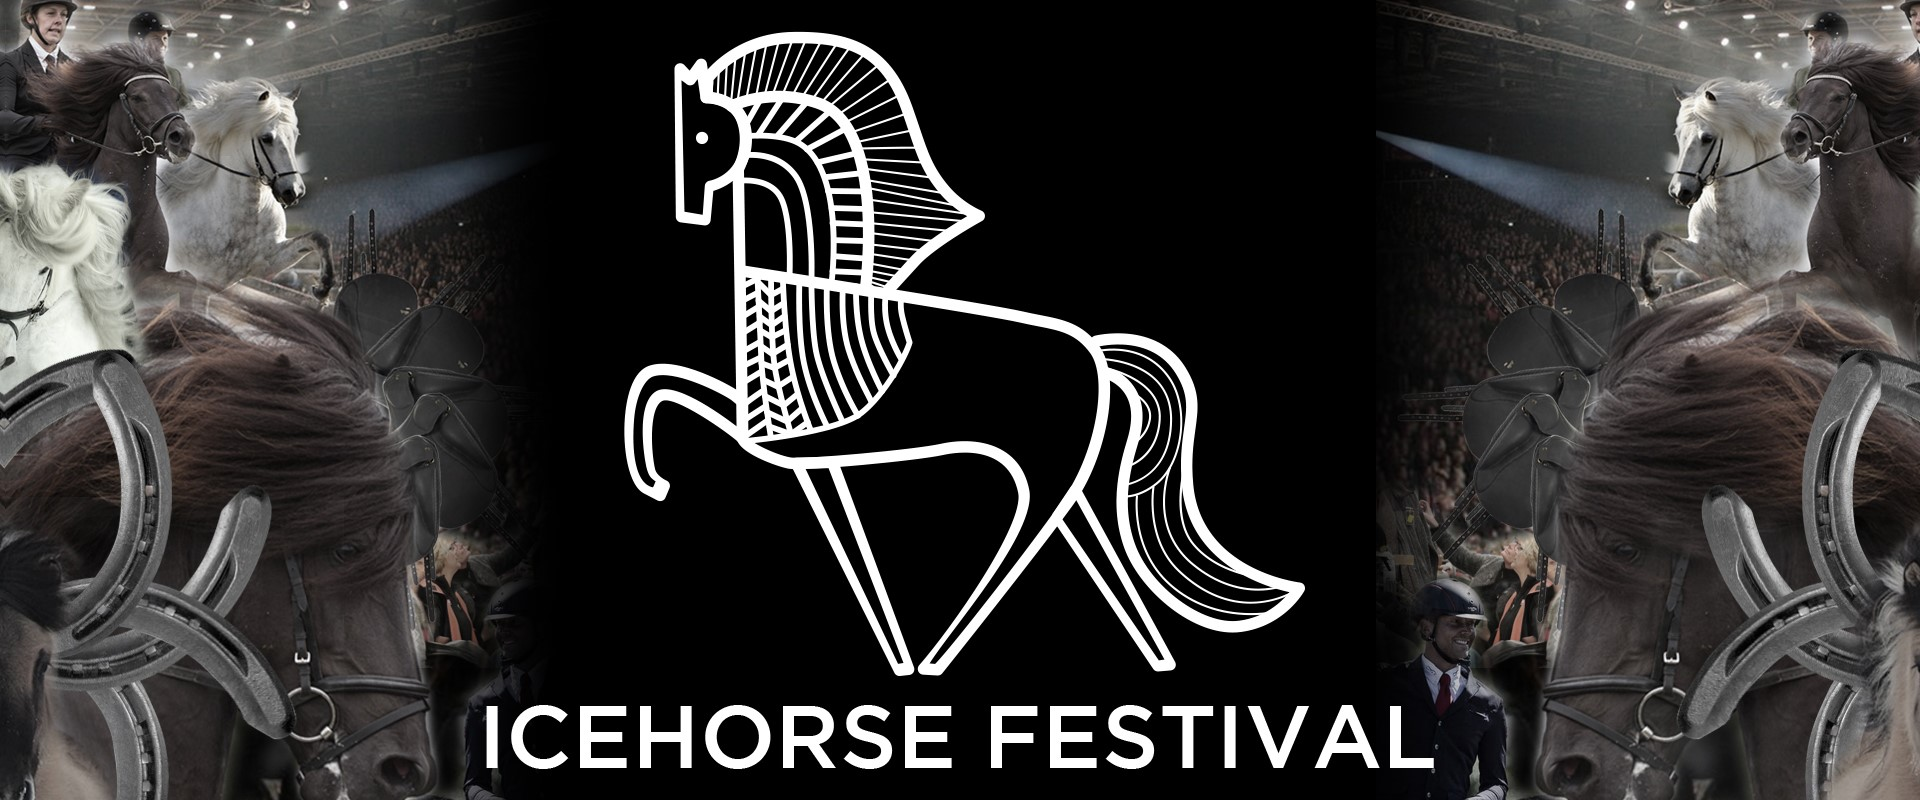 Icehorse Festival